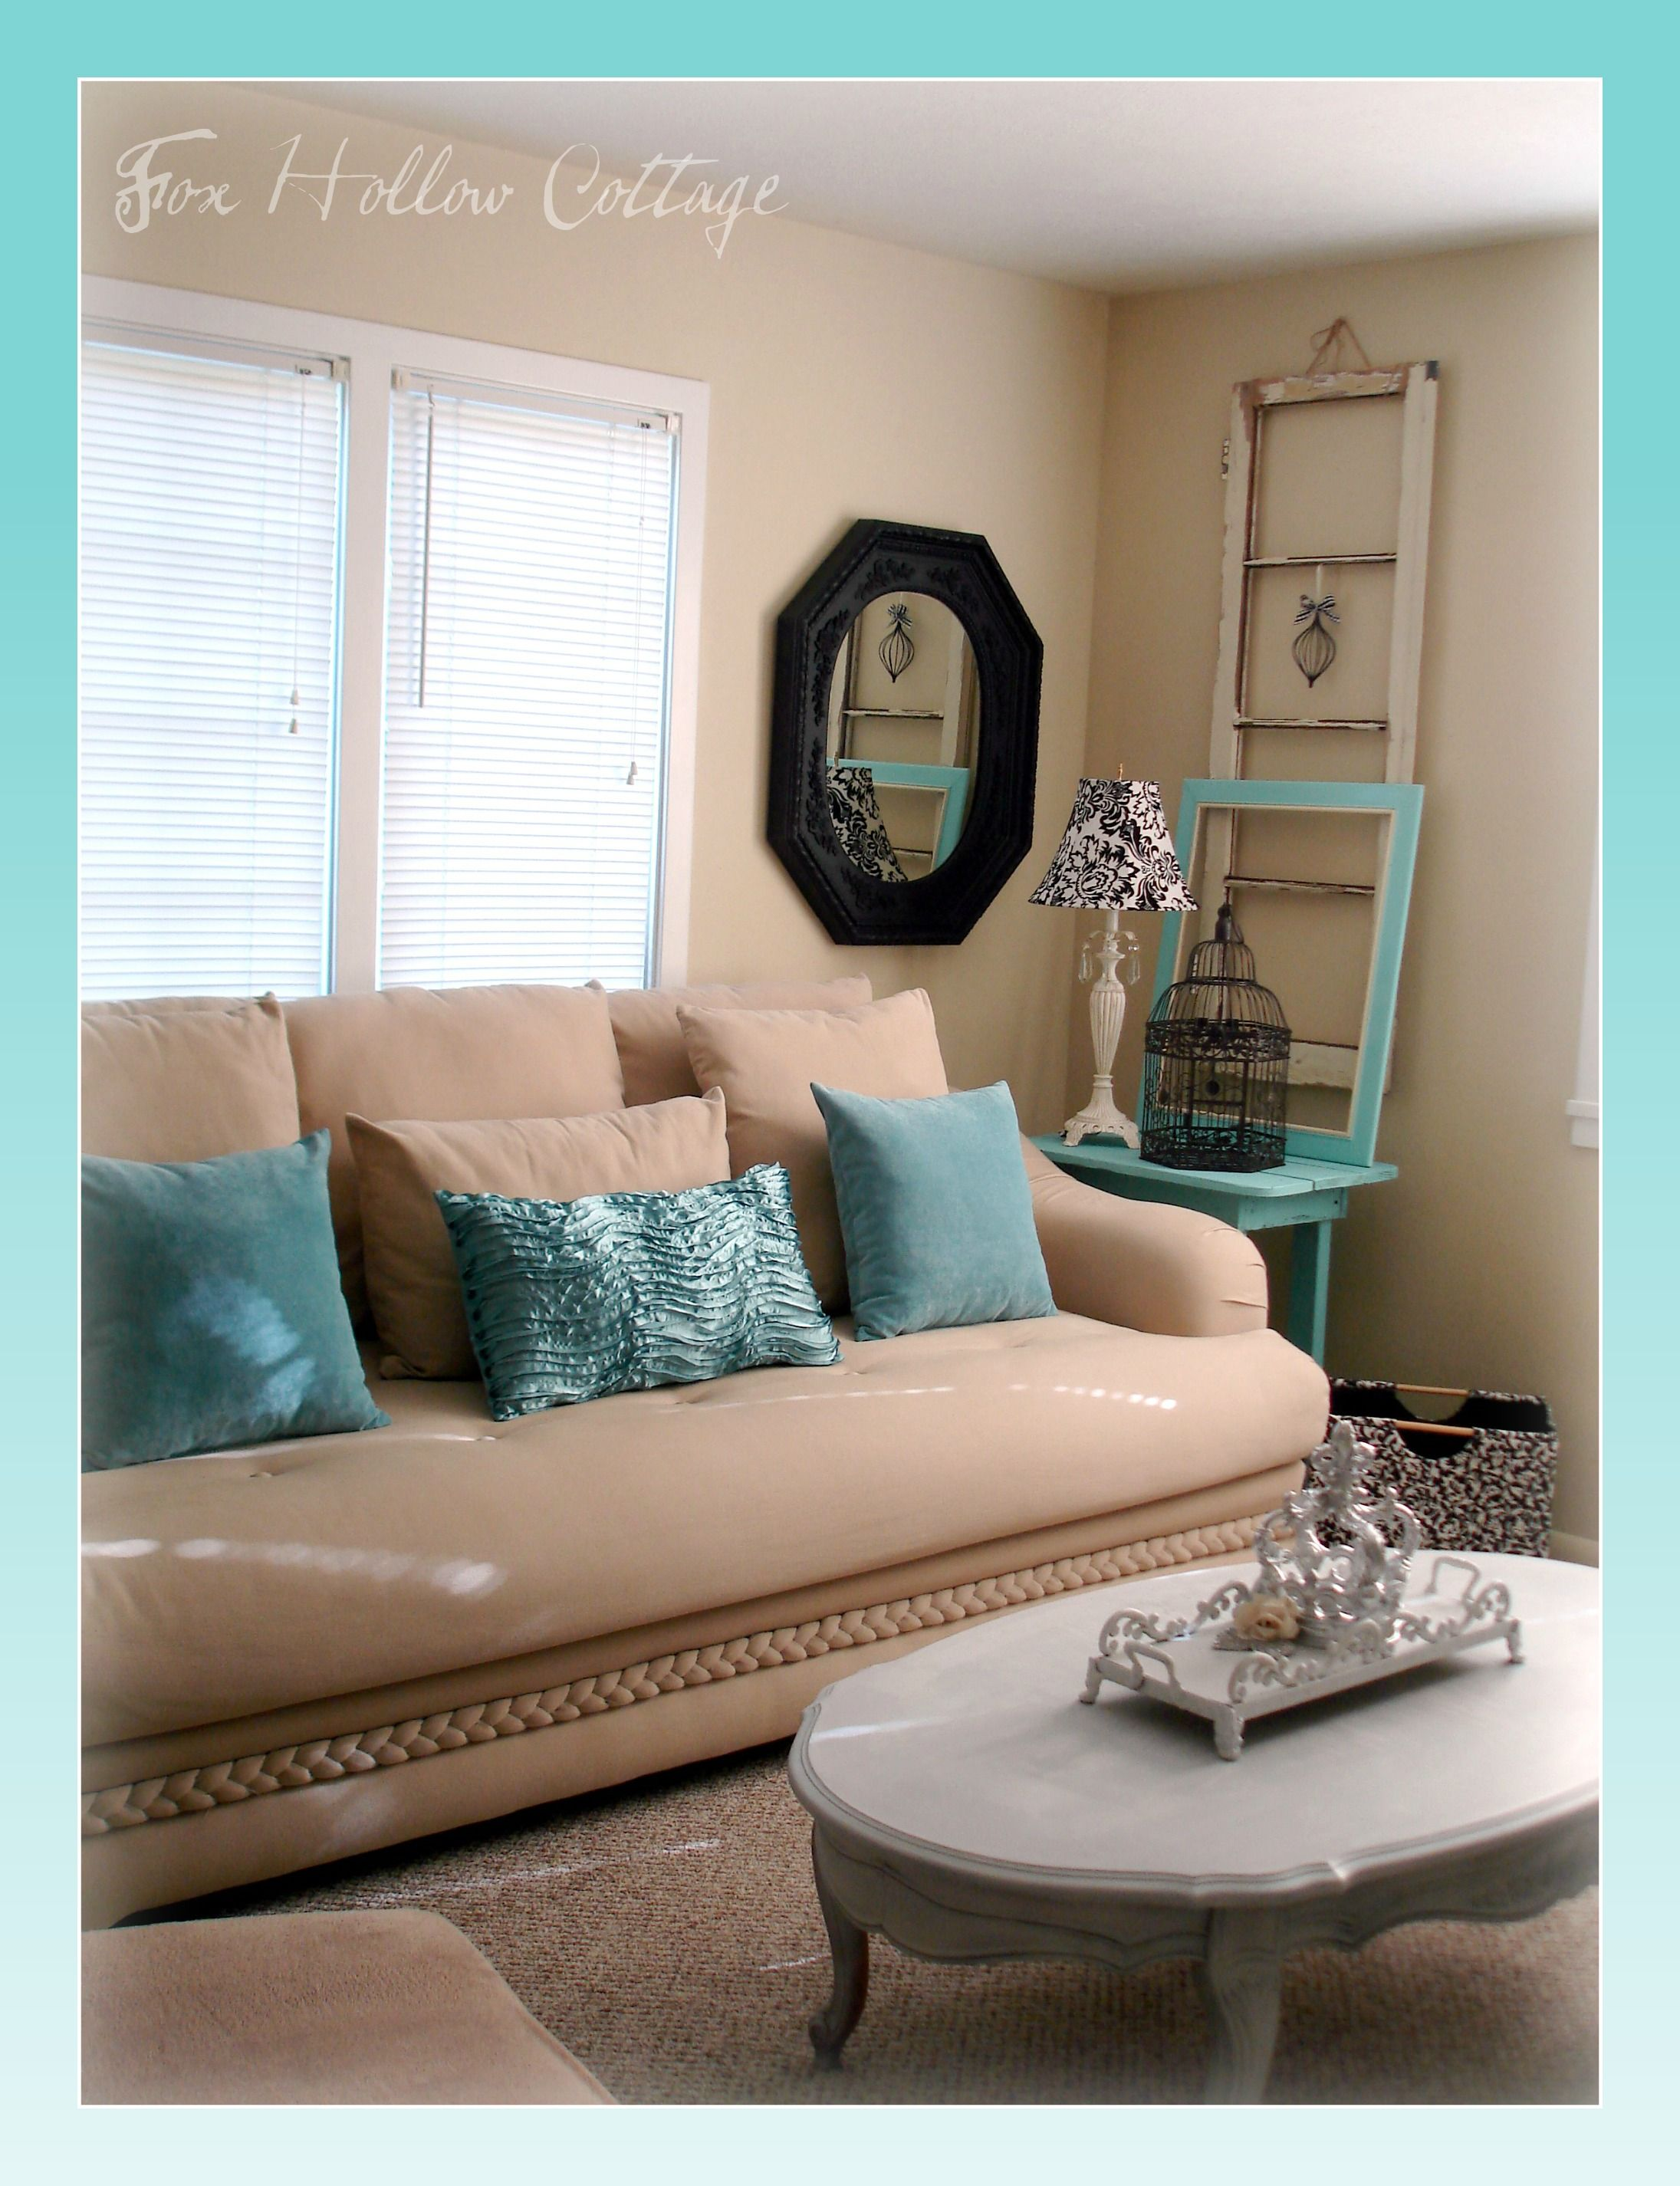 Bedroom Decor Tan aqua, black, white, tan. living room. shabby thrifted mix. we can